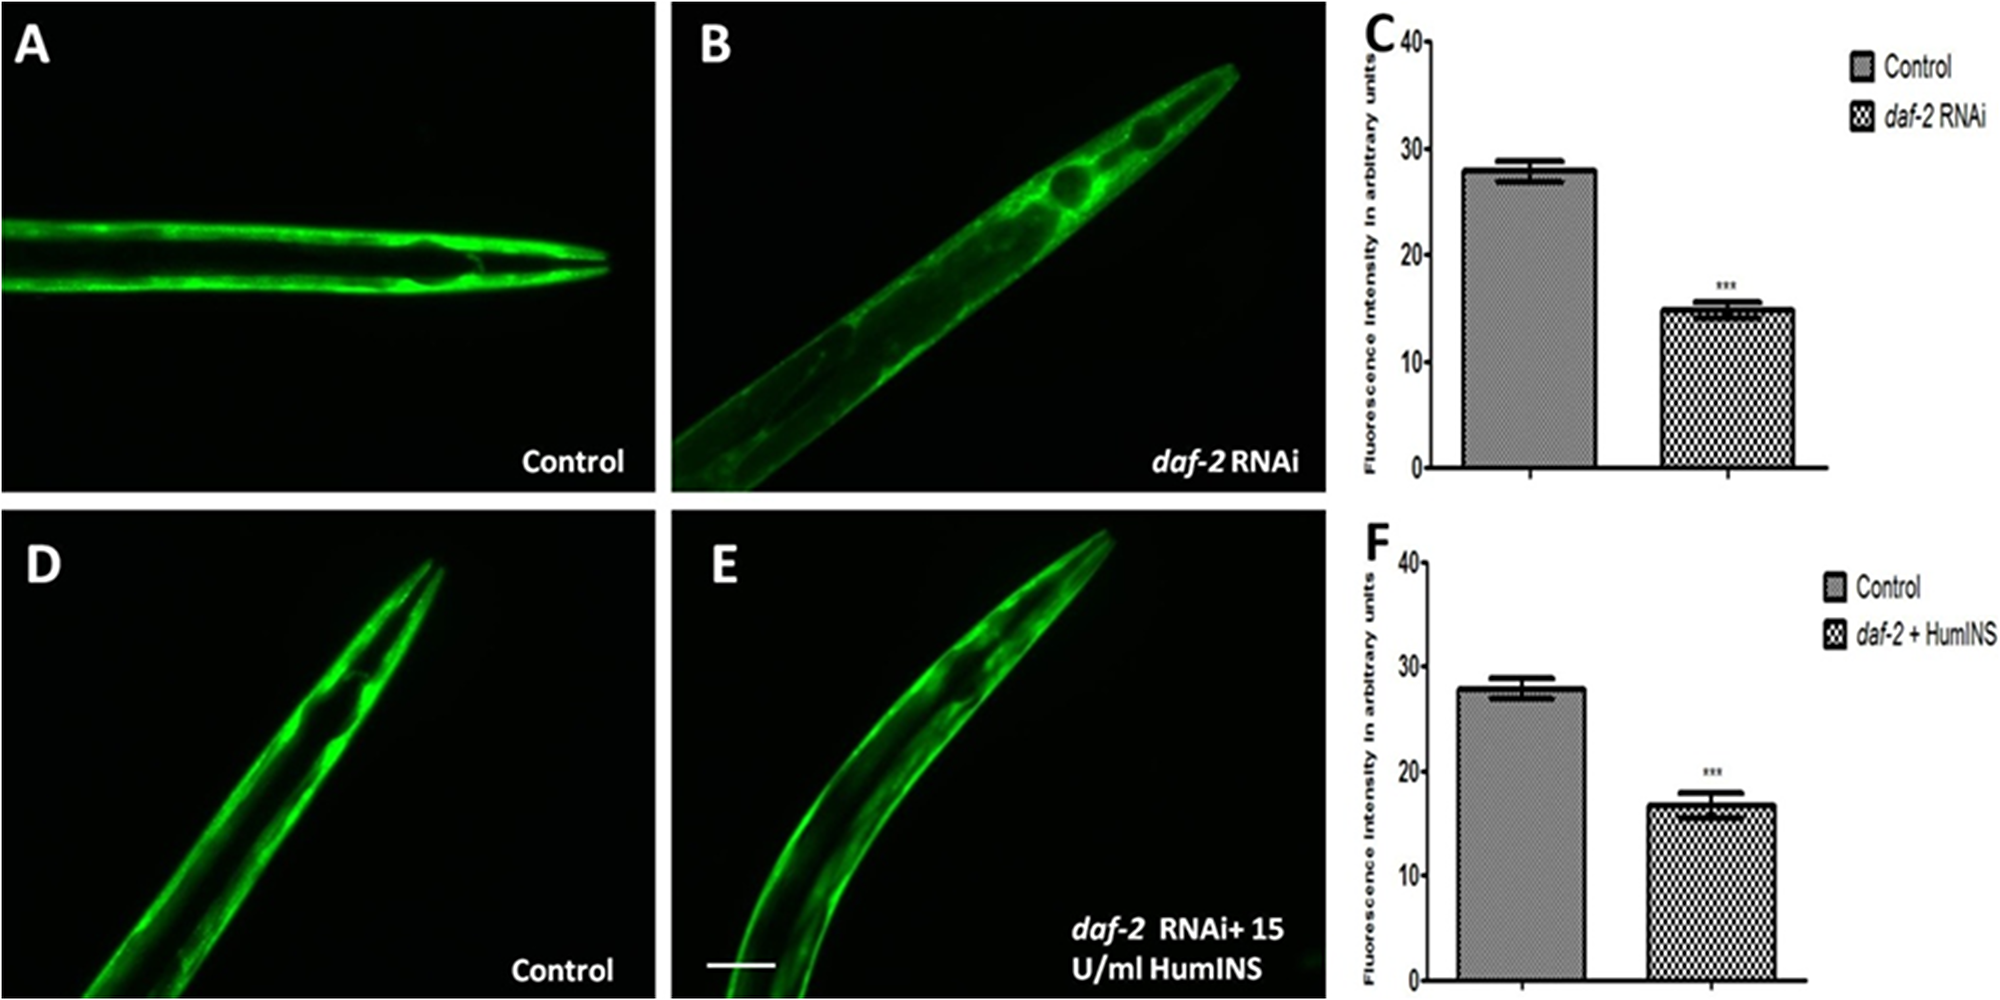 HumINS acts via DAF-2 receptor based signalling in reducing α-syn expression.